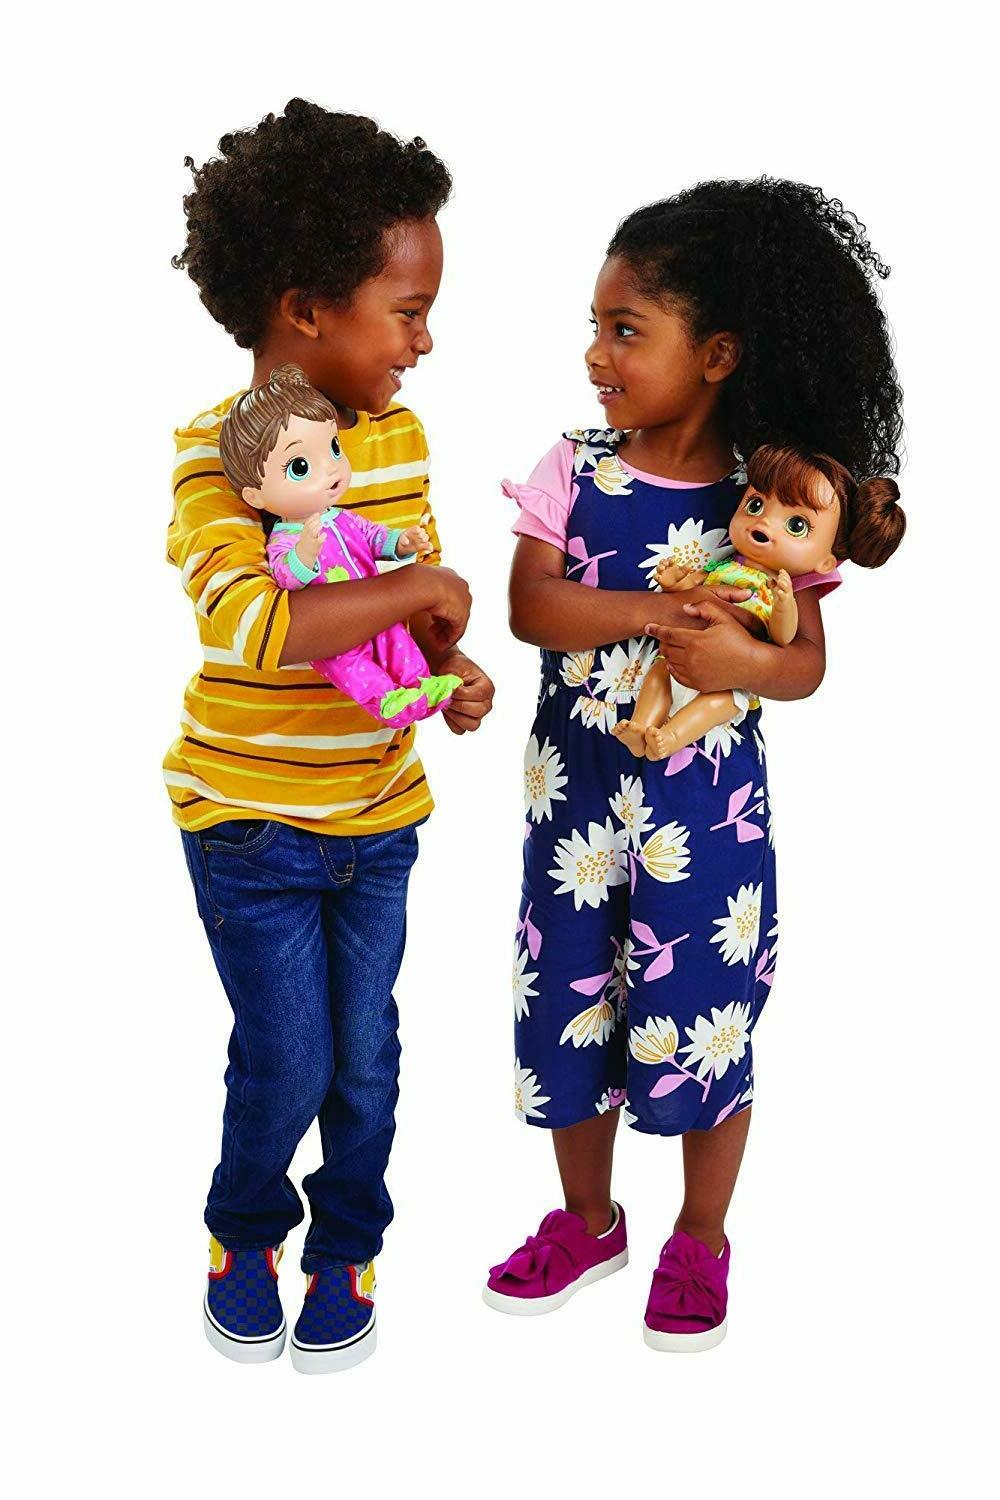 Baby Alive Mixer Baby Doll Shake with Blender and